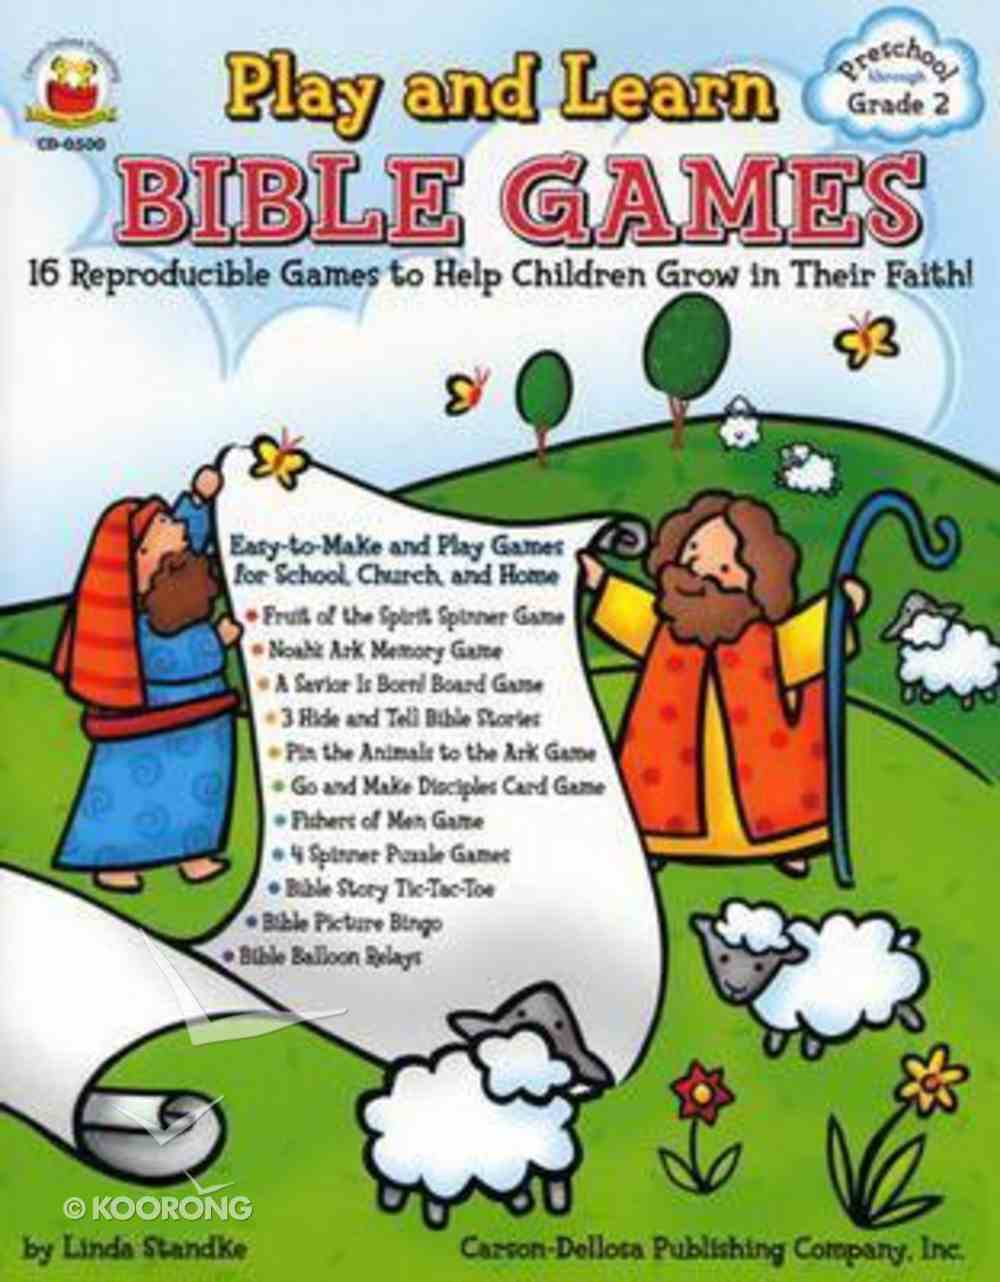 Play and Learn Bible Games (Reproducible) Paperback